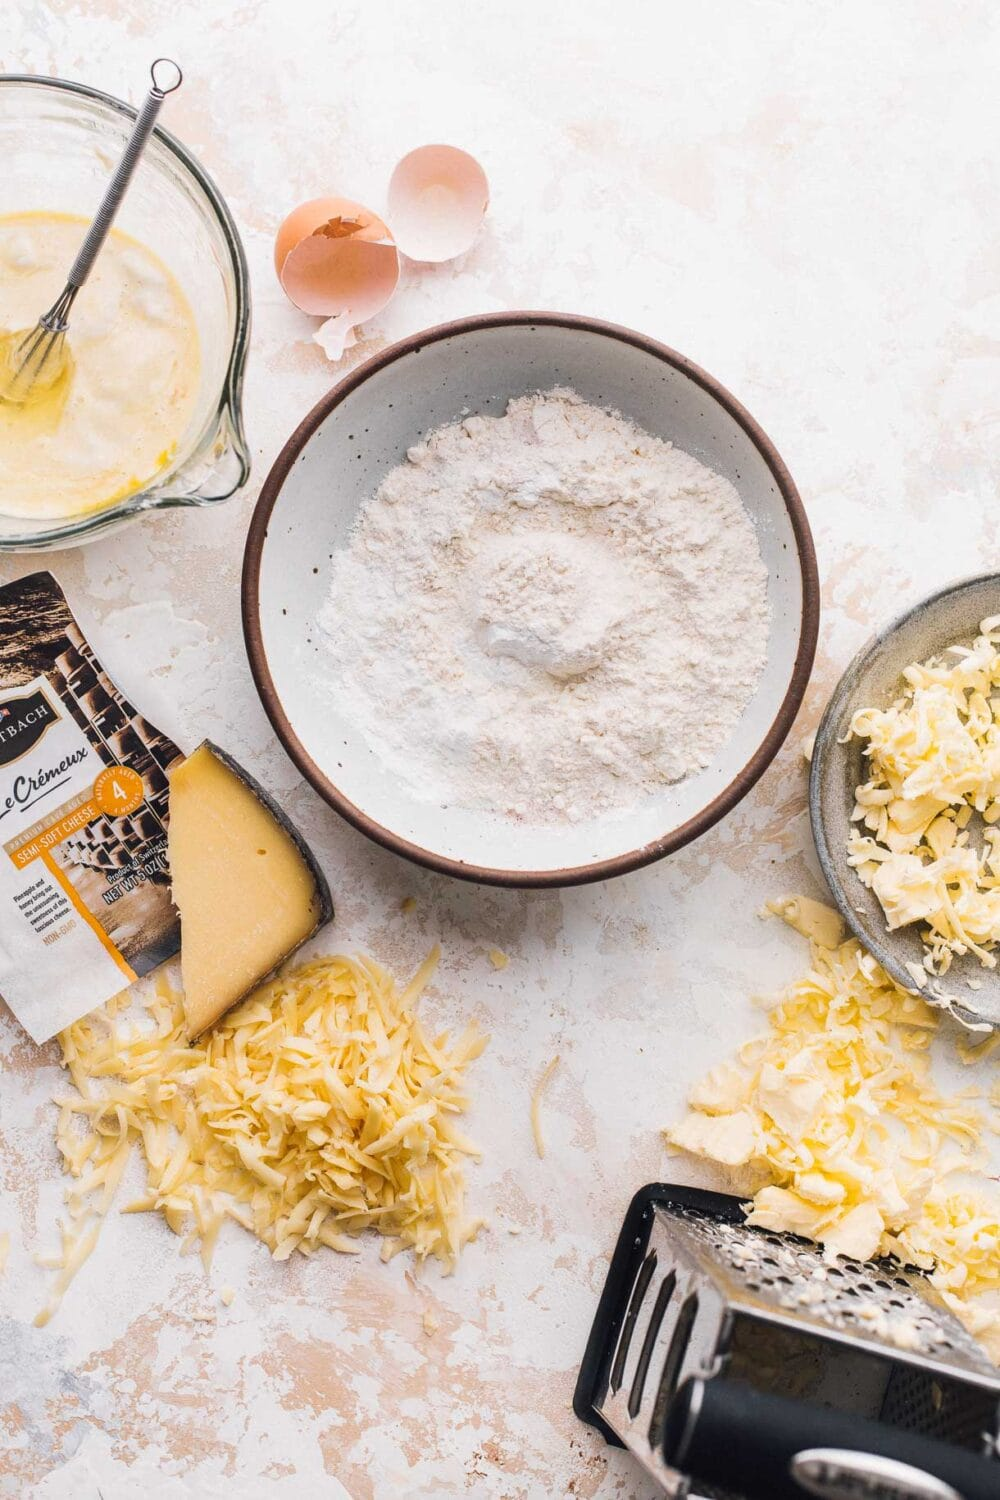 ingredients for sourdough discard biscuits laid out on a white surface, has a bowl of flour in the middle with grated cheese and butter to its side